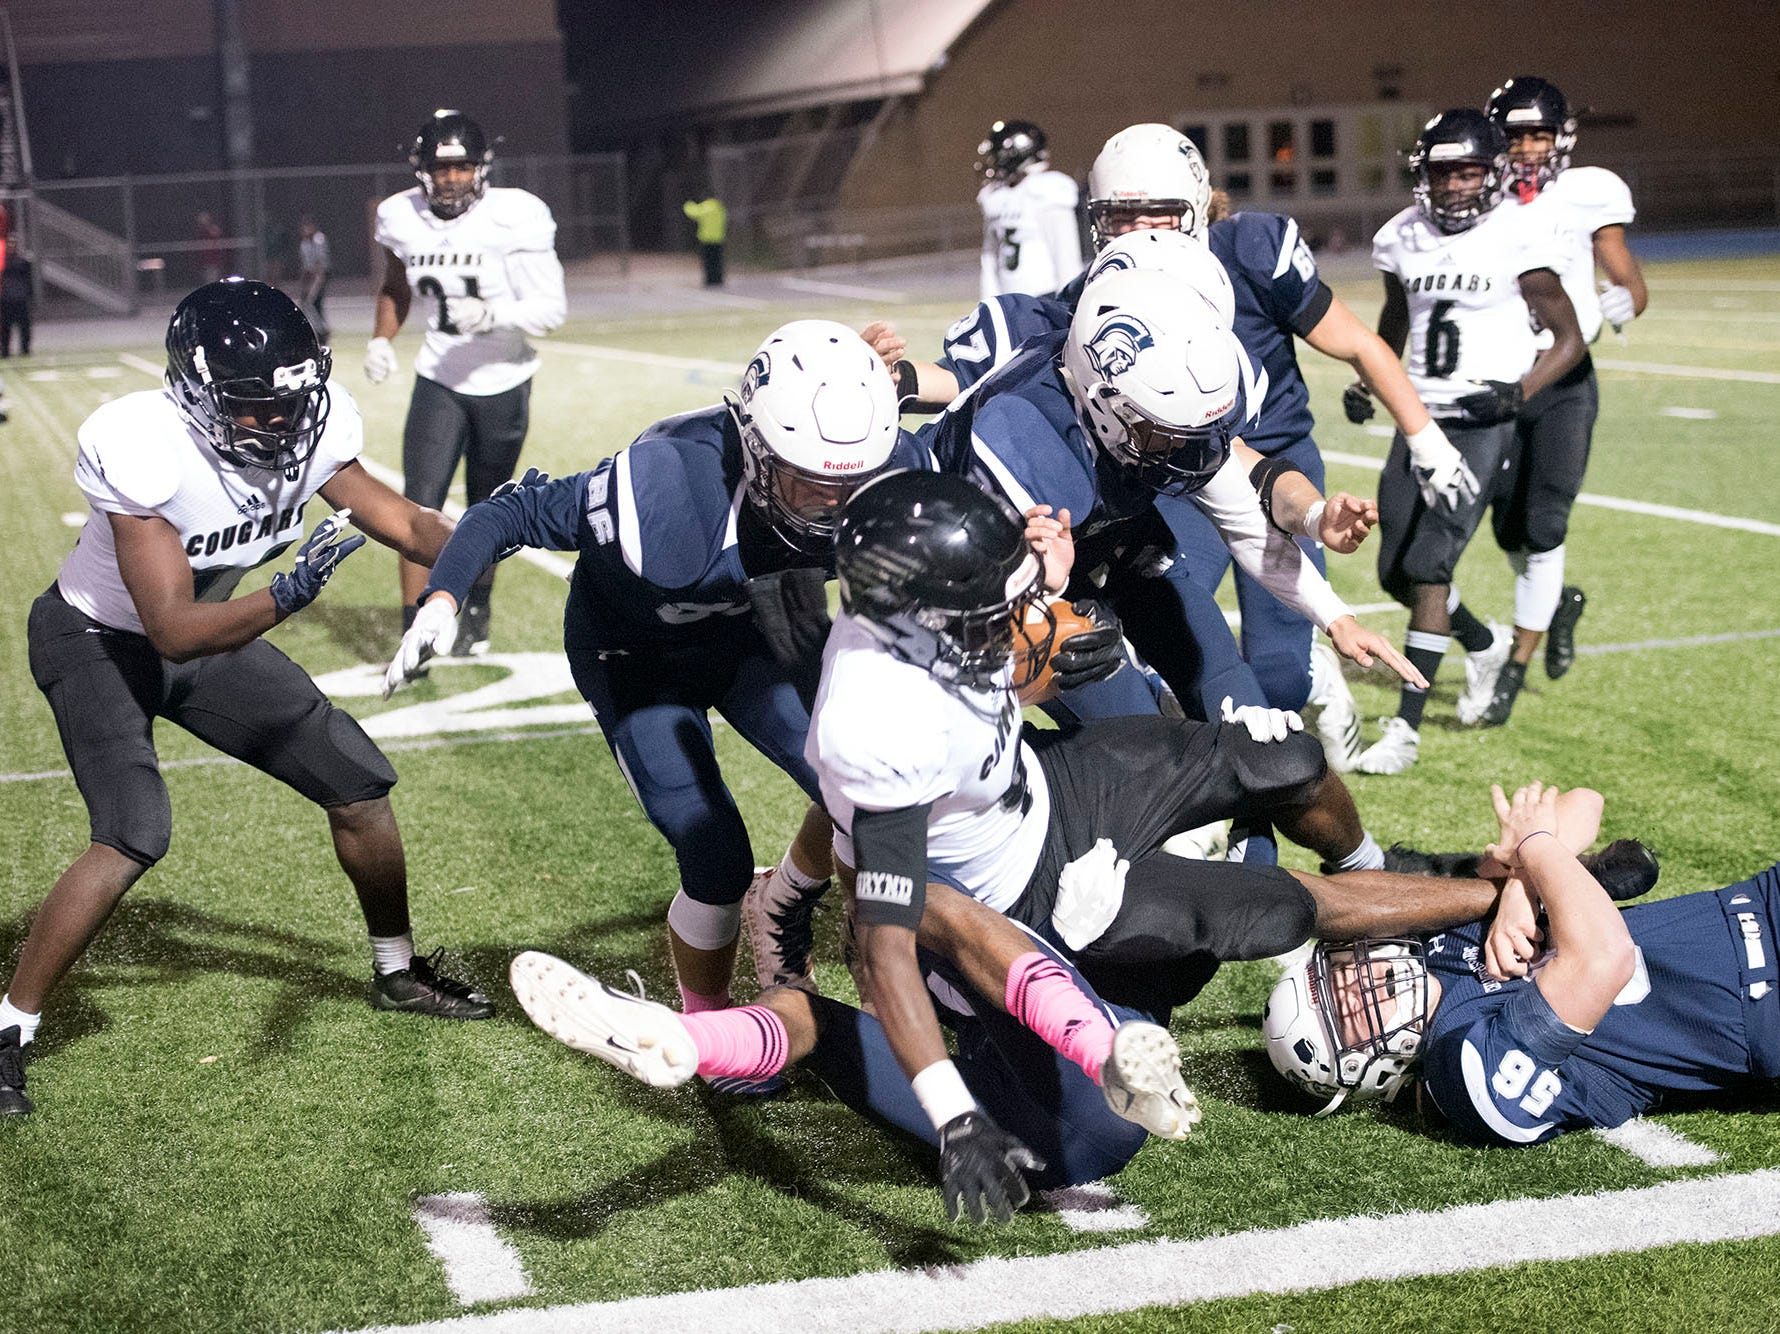 Harrisburg' Donte Kent runs the ballet before being tackled by a host of Chambersburg defenders. Chambersburg dropped a 28-13 game against Harrisburg in PIAA football on Friday, Oct. 12, 2018.